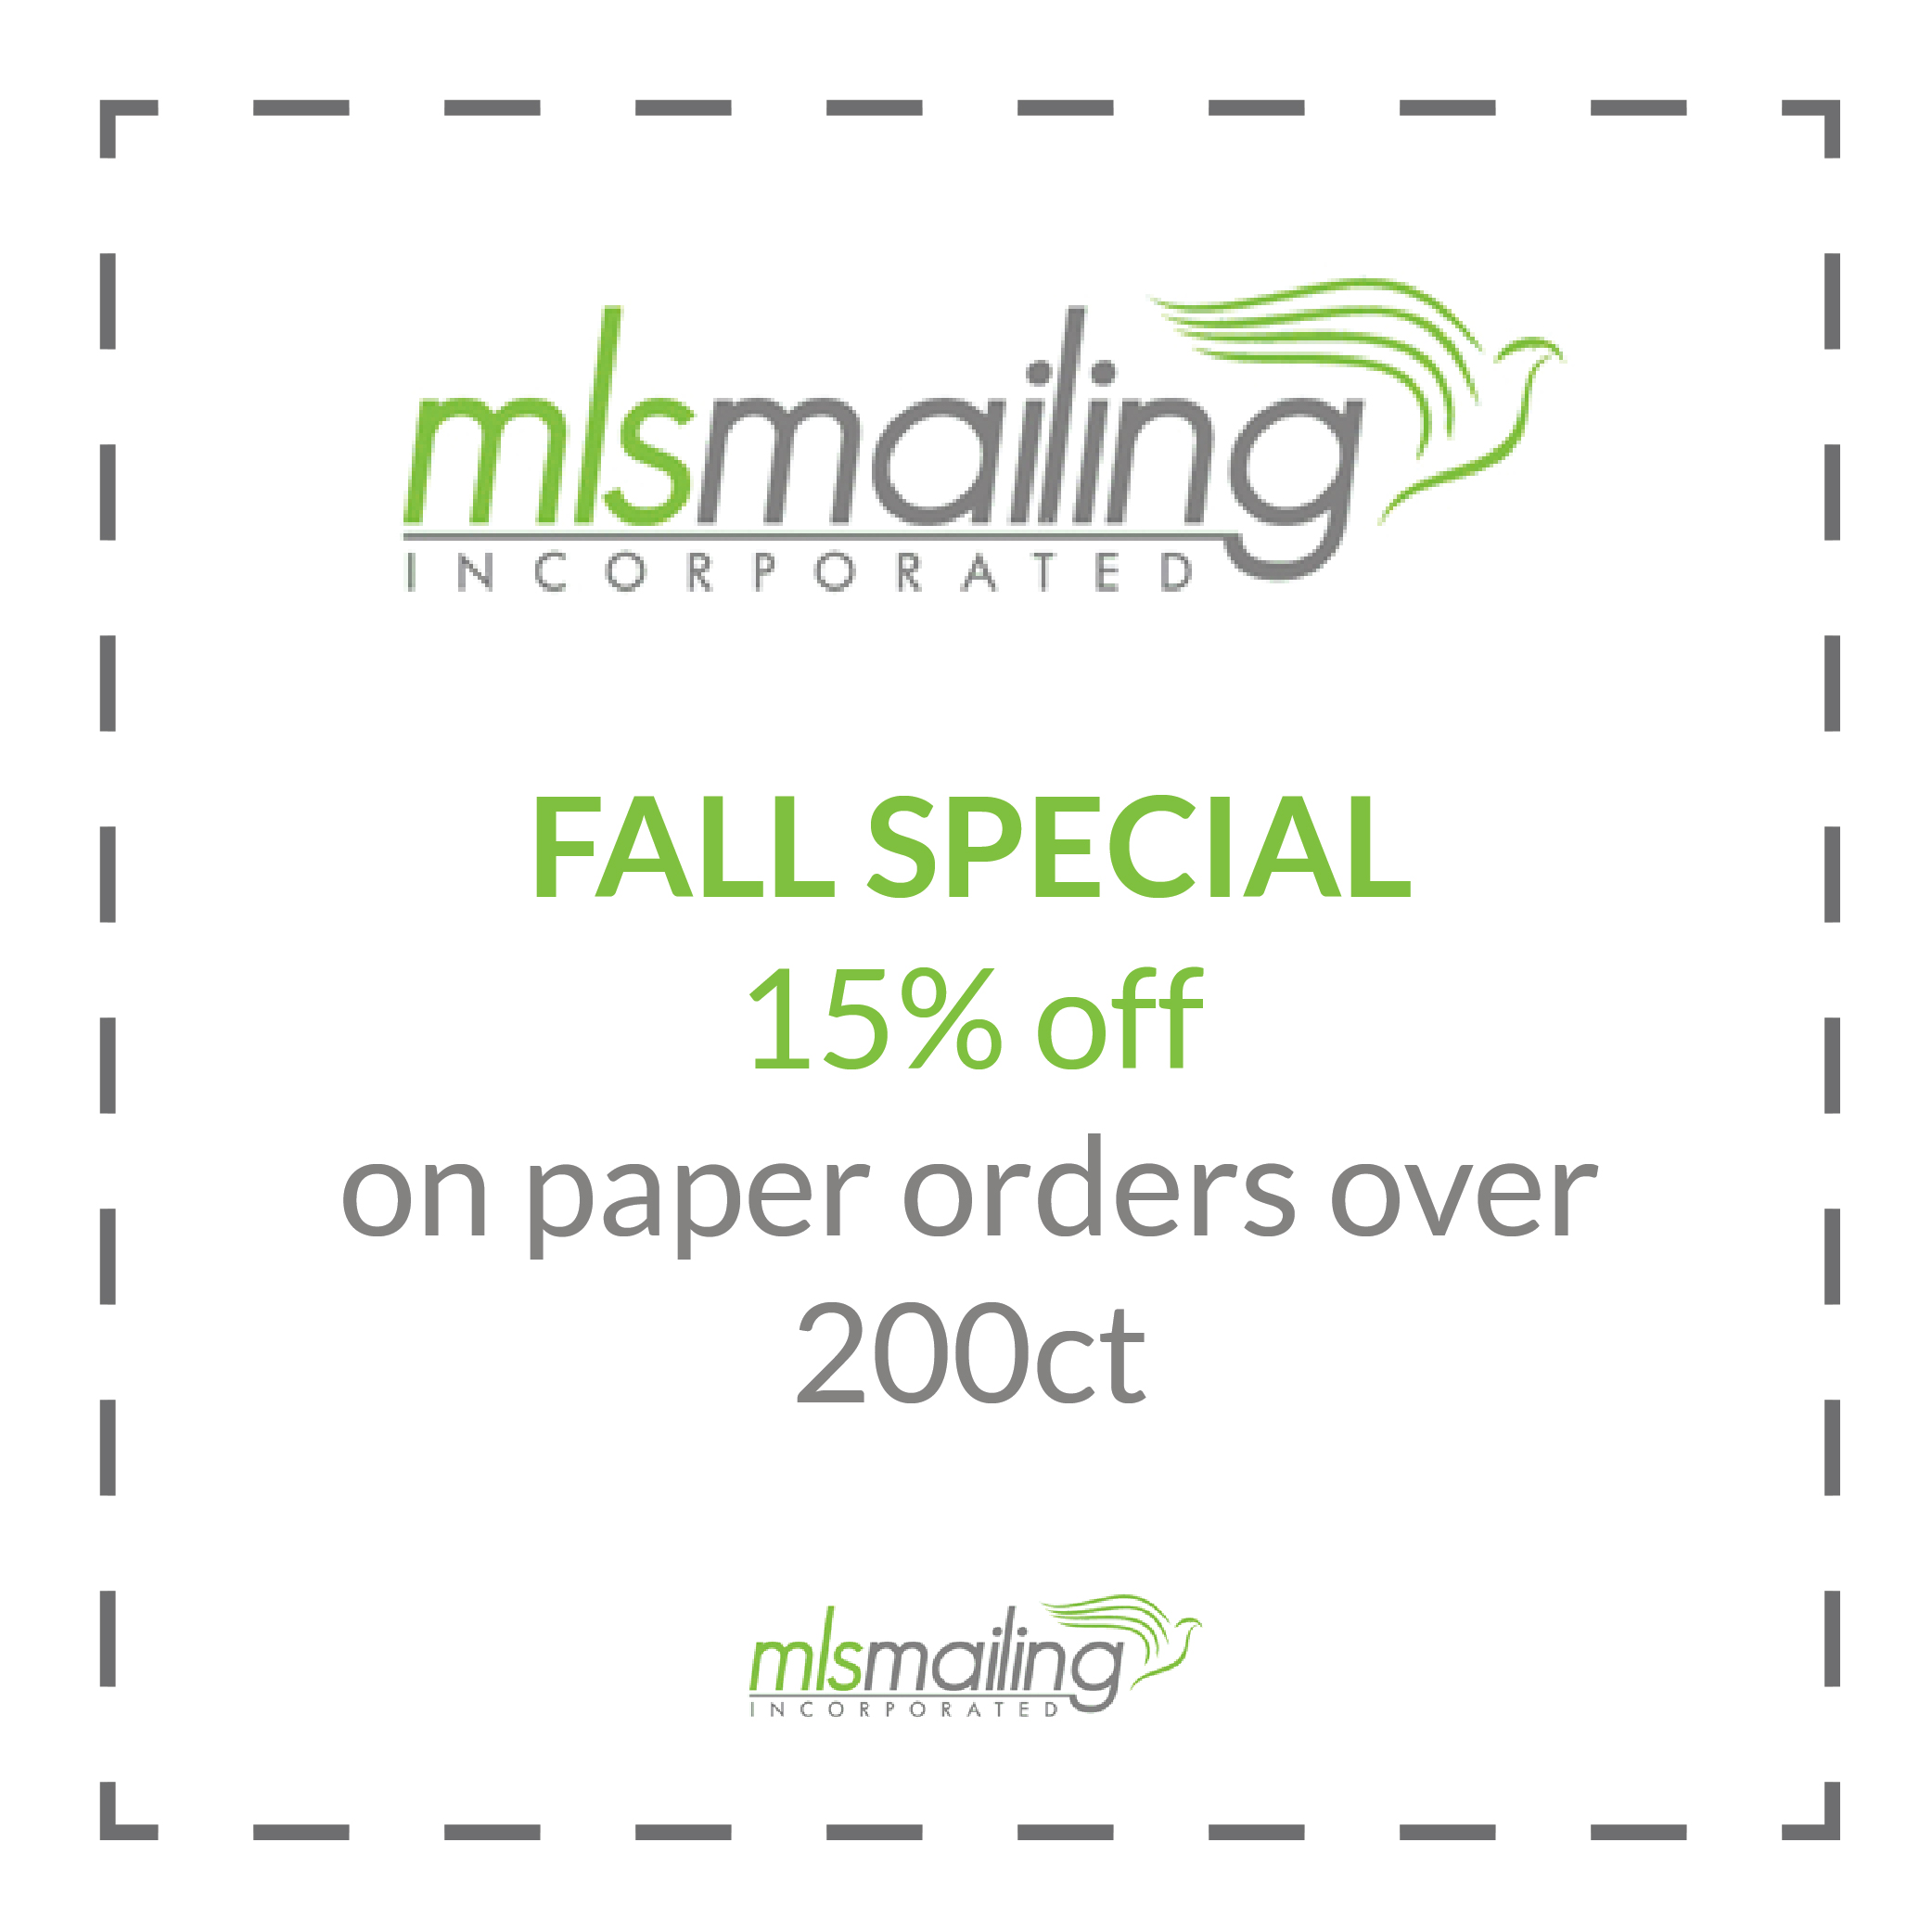 Printing Mailing Promotions Huntley Crystal Lake Algonquin Woodstock Il Mls Mailing